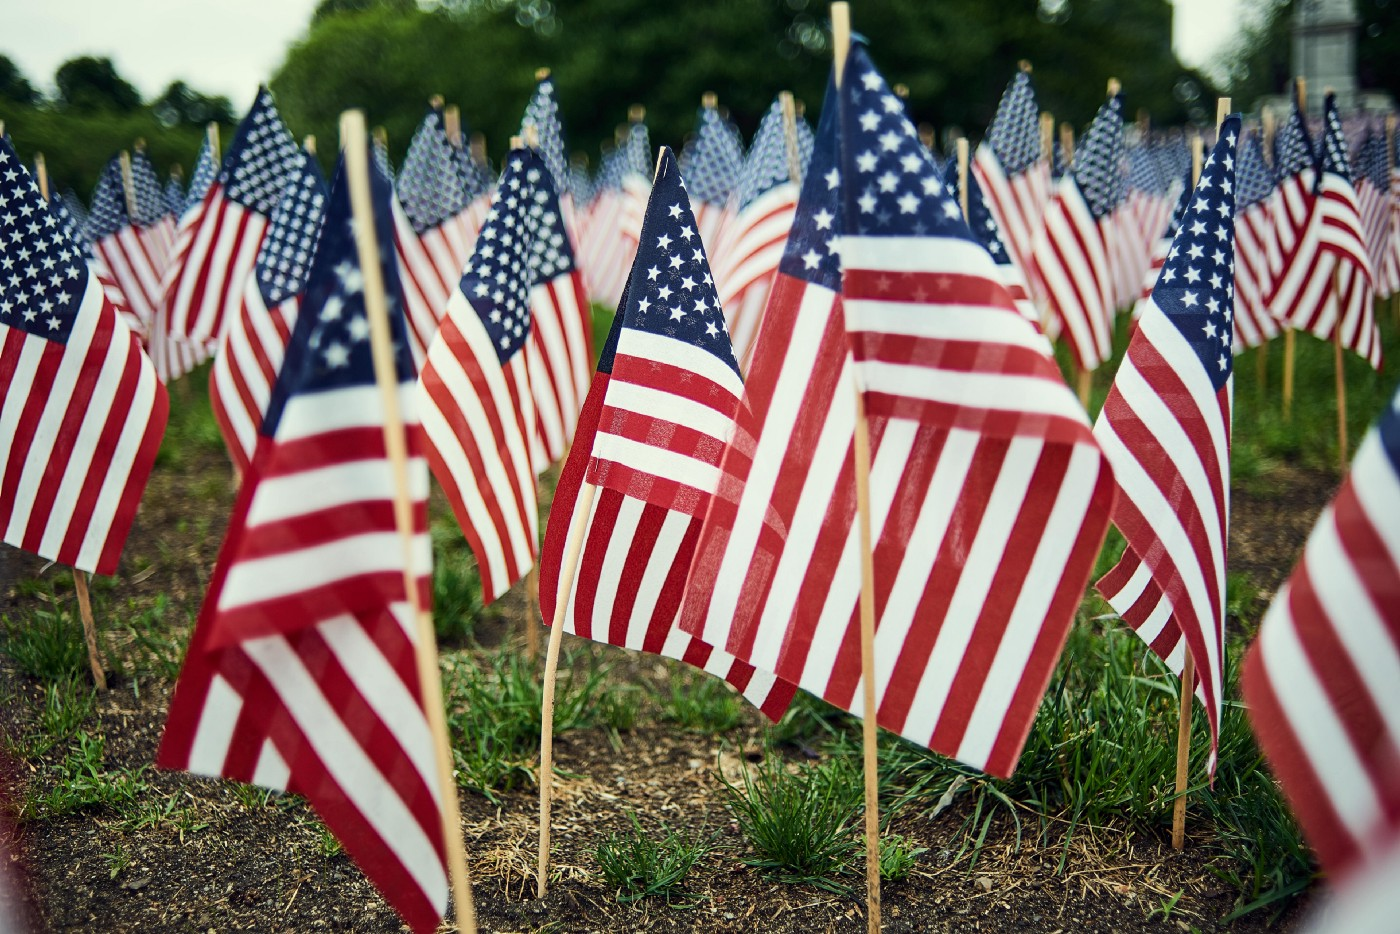 Picture of several flags stuck in ground for Memorial Day, posted on Mickey Markoff article about spirit of Memorial Day.